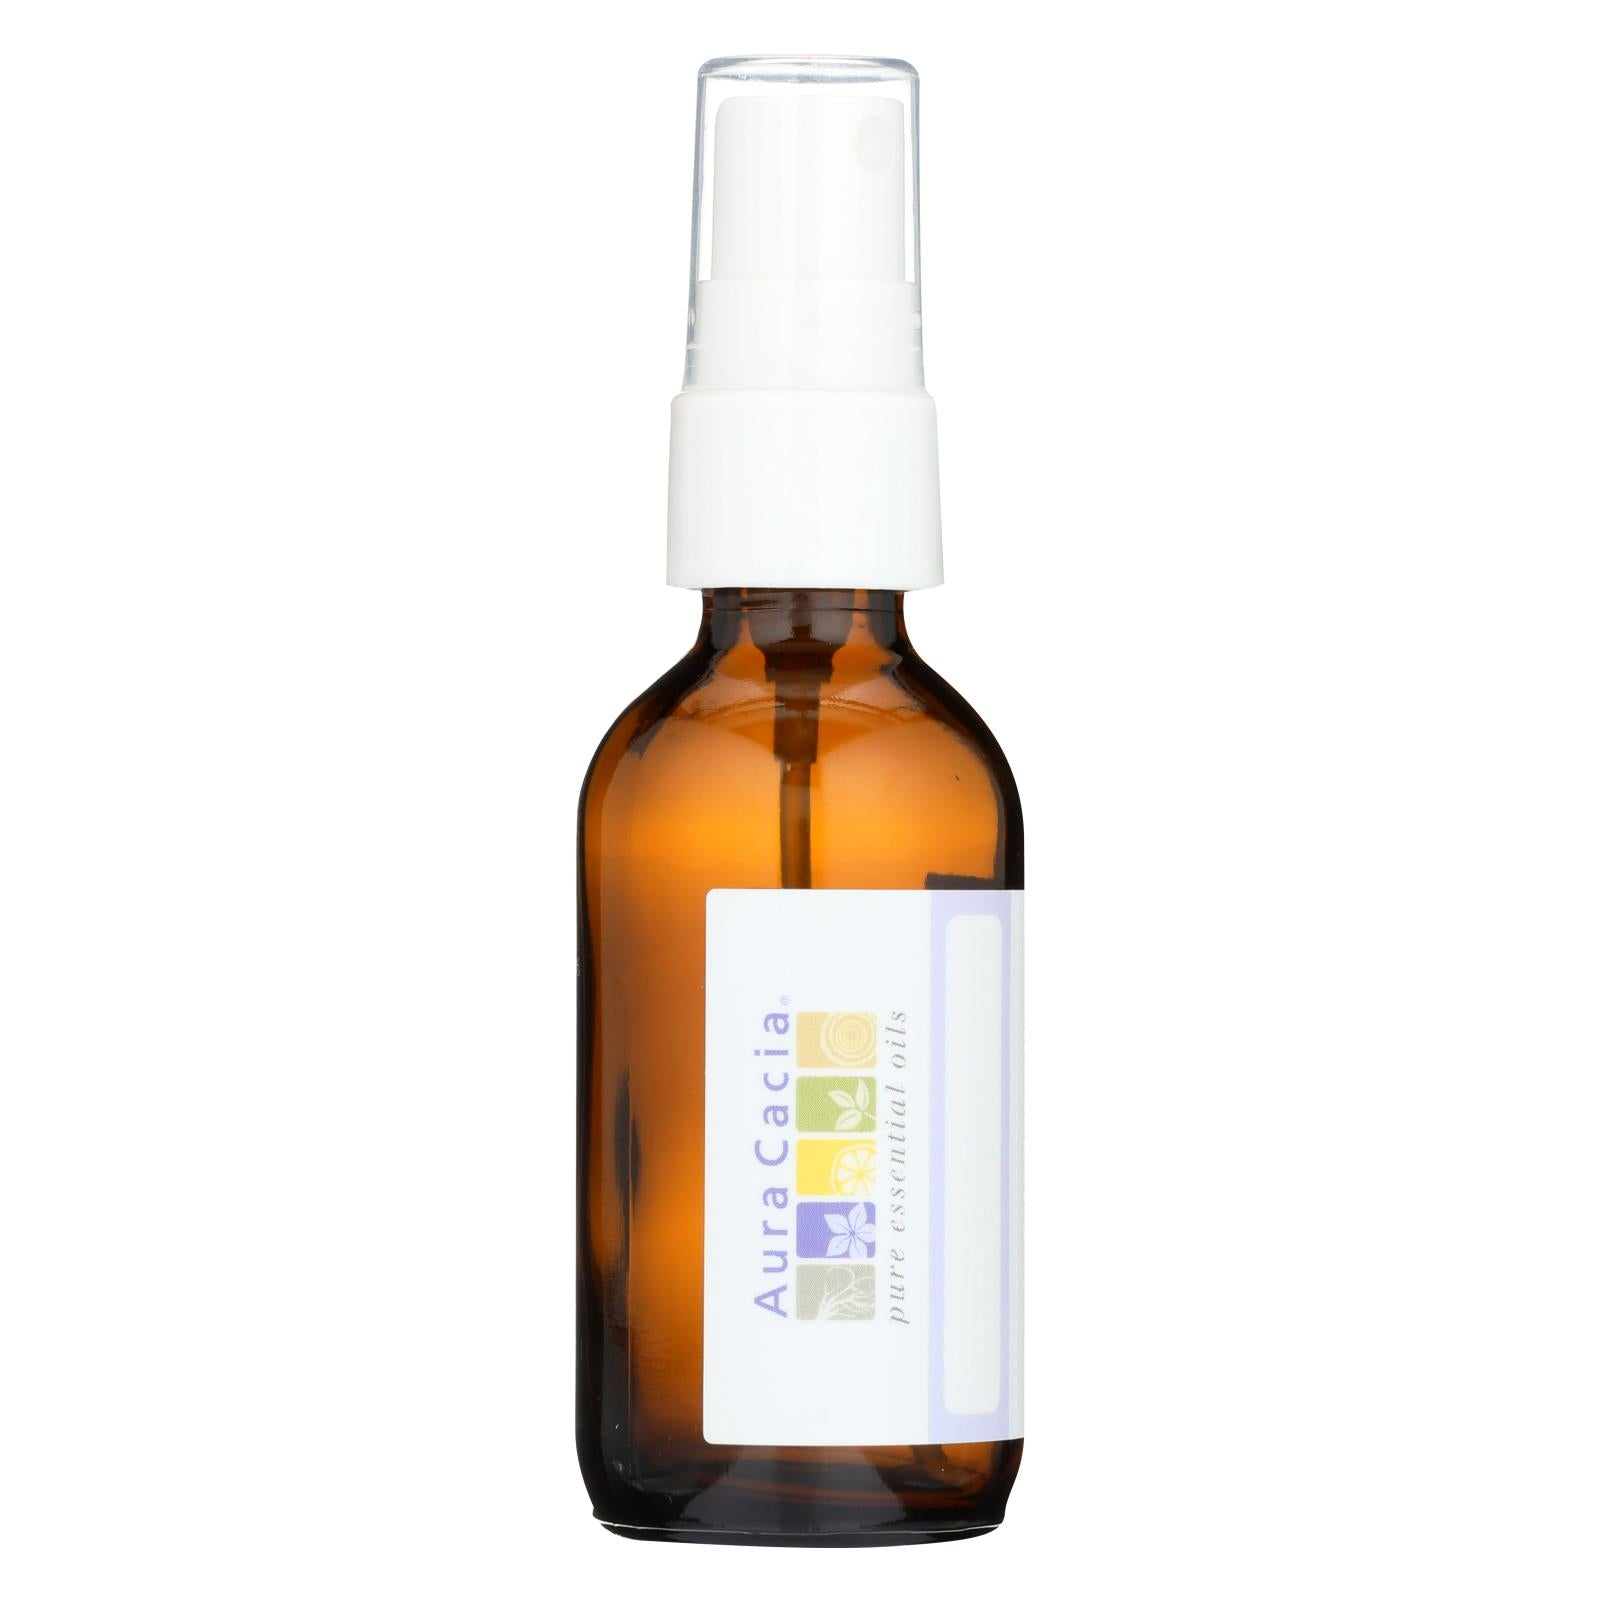 Buy Aura Cacia Bottle - Glass - Amber - Mist - 2 oz - Aromatherapy from Veroeco.com